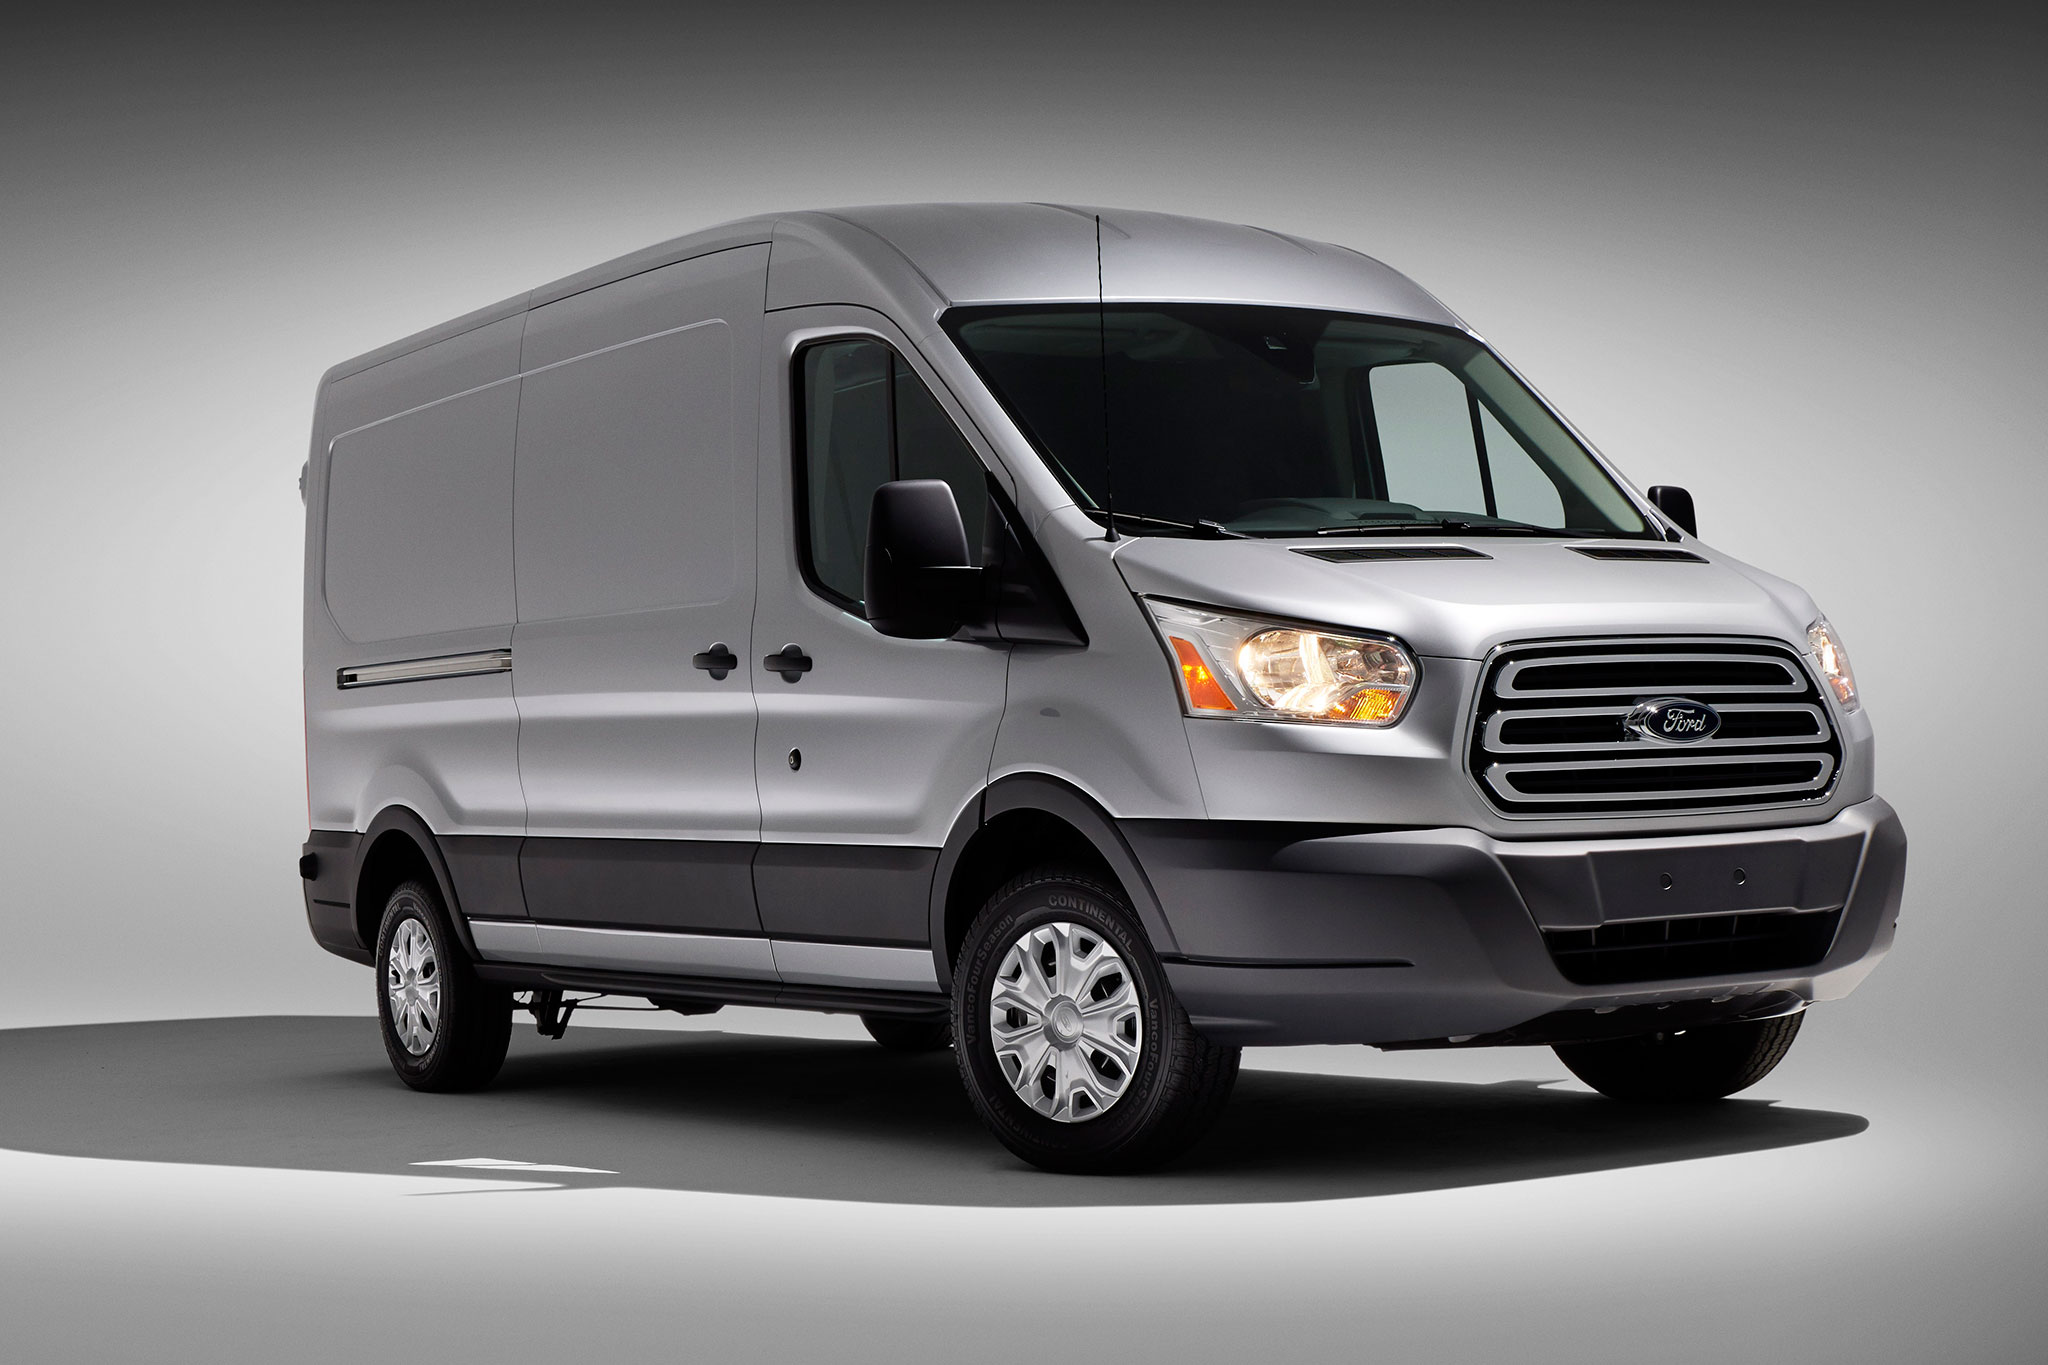 2015 ford transit great choice for affordable passenger. Black Bedroom Furniture Sets. Home Design Ideas